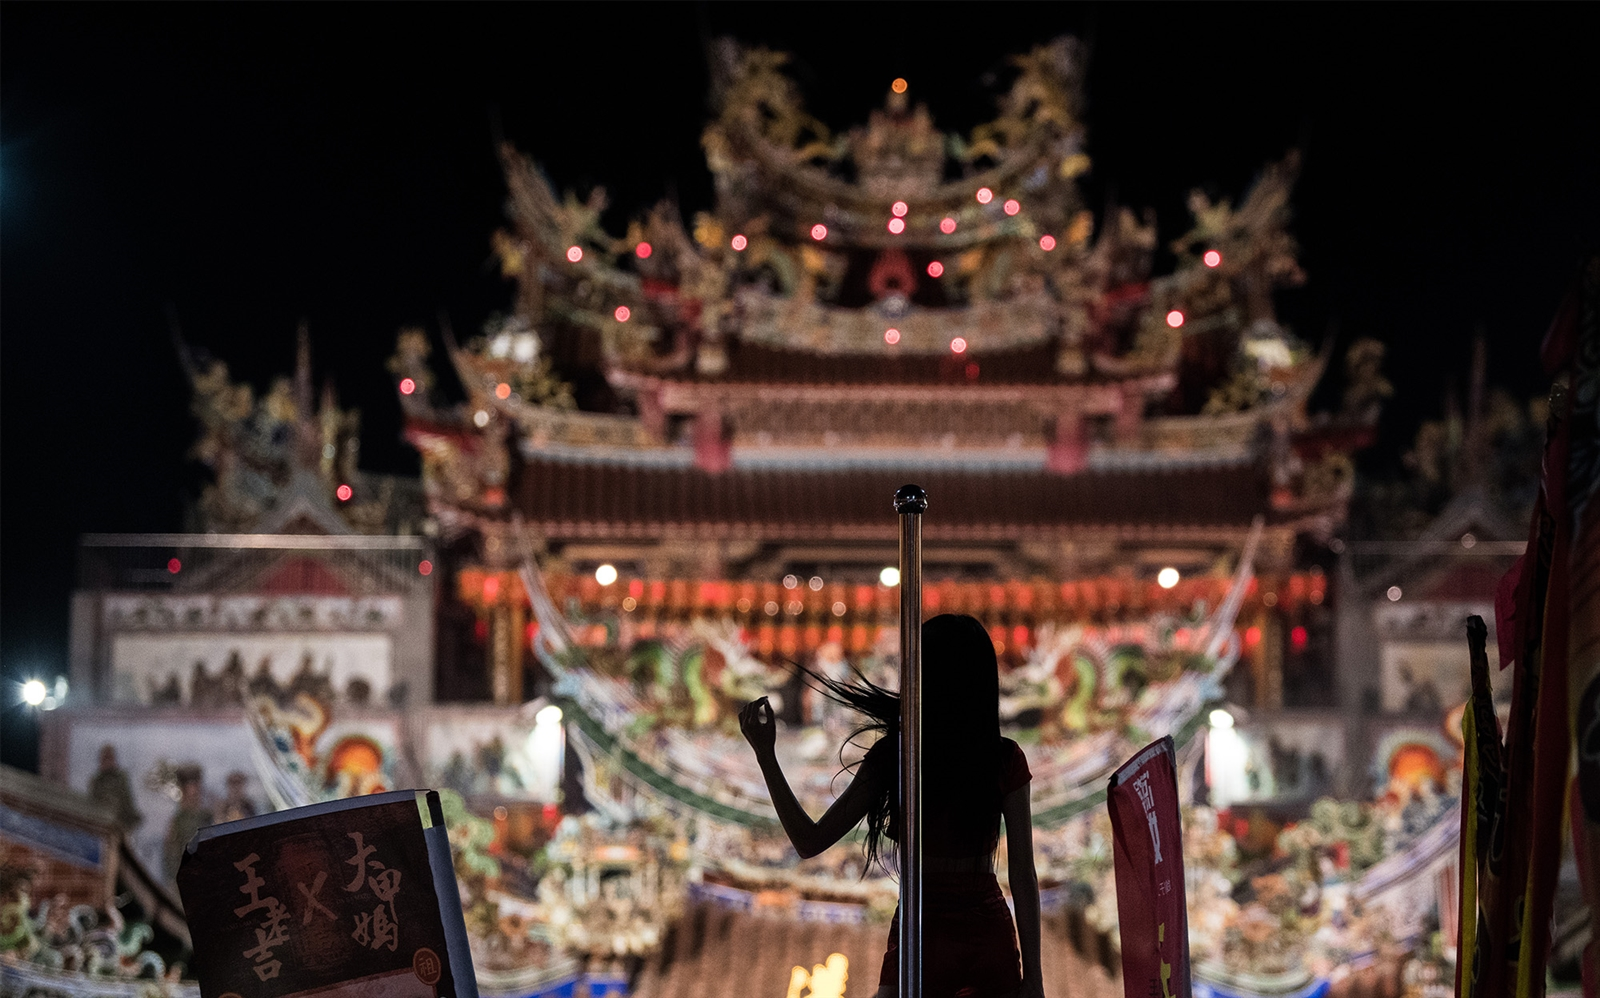 April 16, 2018 - Taiwan: A dancer performs on the roof of a car in front of Xingang Fengtian Temple, where the statue of Mazu will rest for two nights before resuming its journey nine-day Mazu pilgrimage in Xingang, Taiwan. The journey visits more than 100 temples before returning to Taichung. The centuries-old pilgrimage is now recognized by UNESCO as living heritage. With an estimated 5 million participants spread over the nine days, it is considered to be one of the greatest religious festivals in the world.